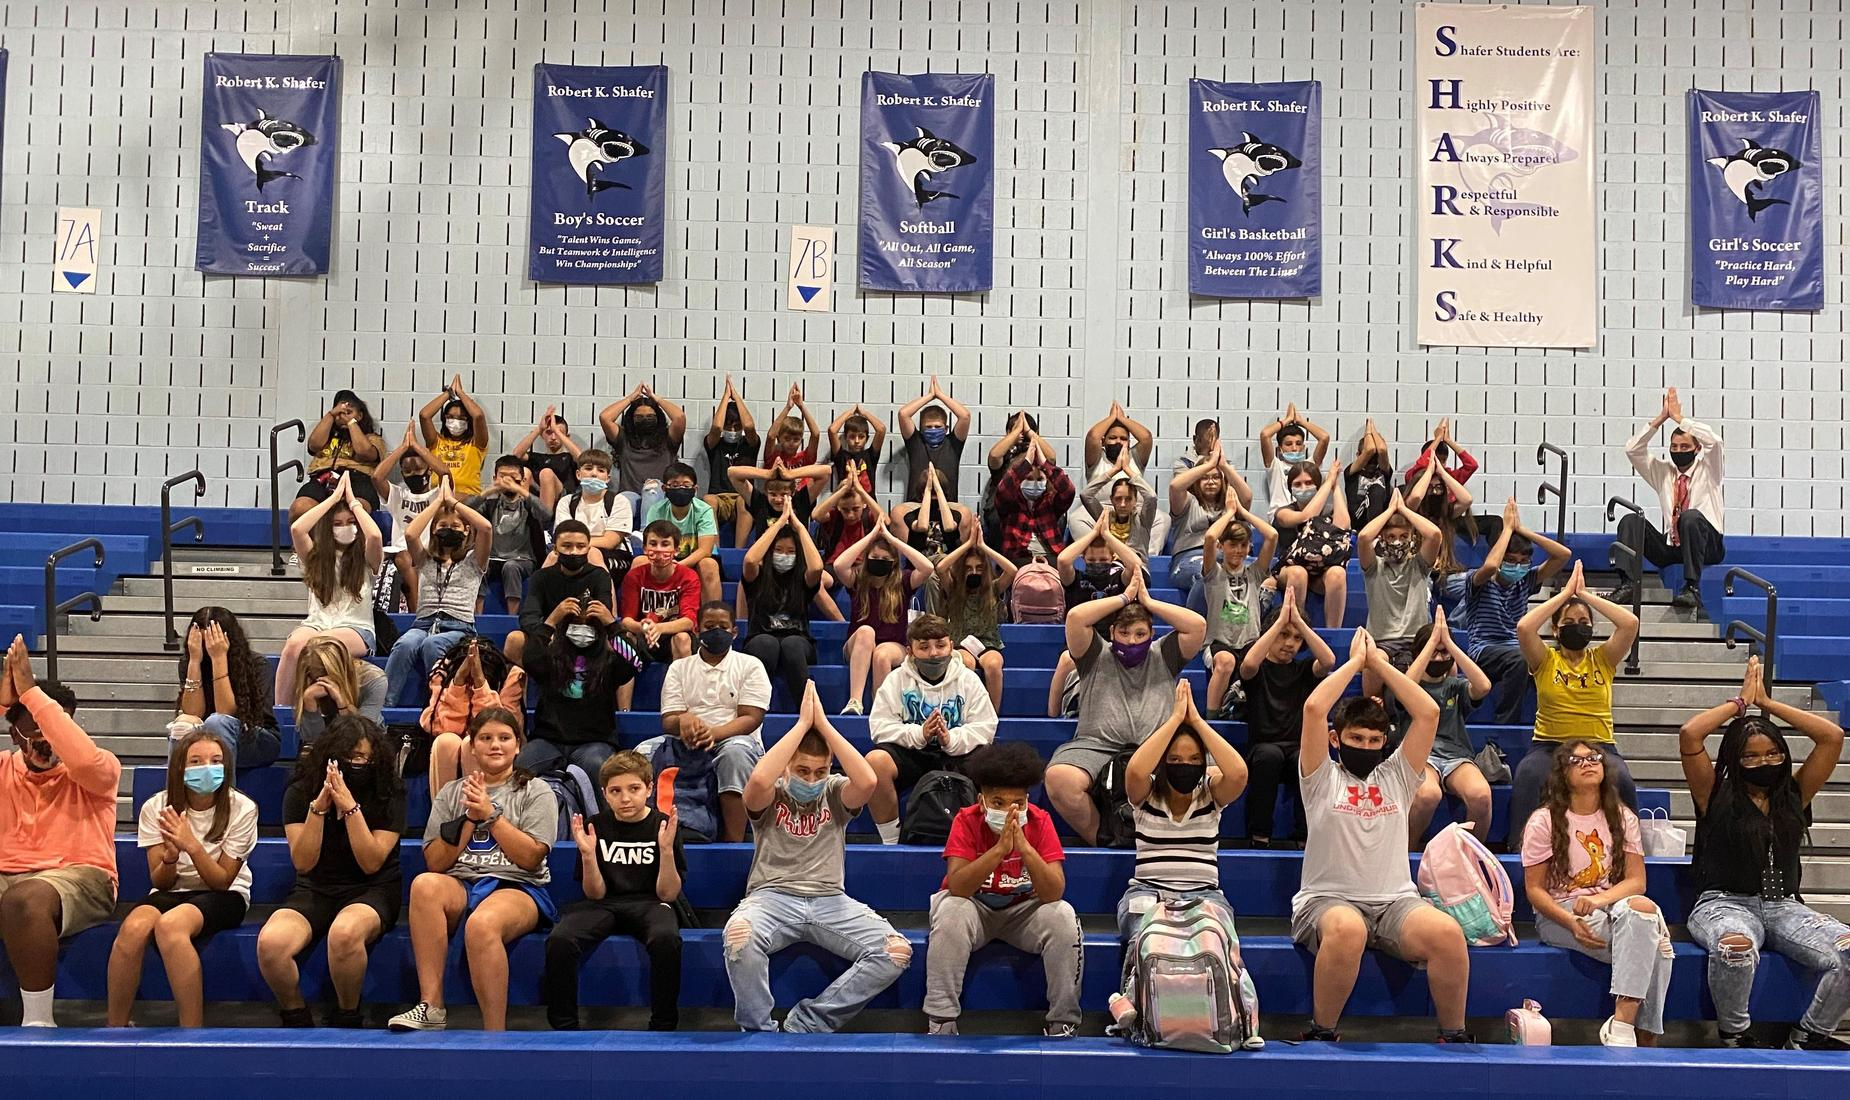 Shafer Middle Students holding their hands above their heads as though they were fins for their mascot - shark